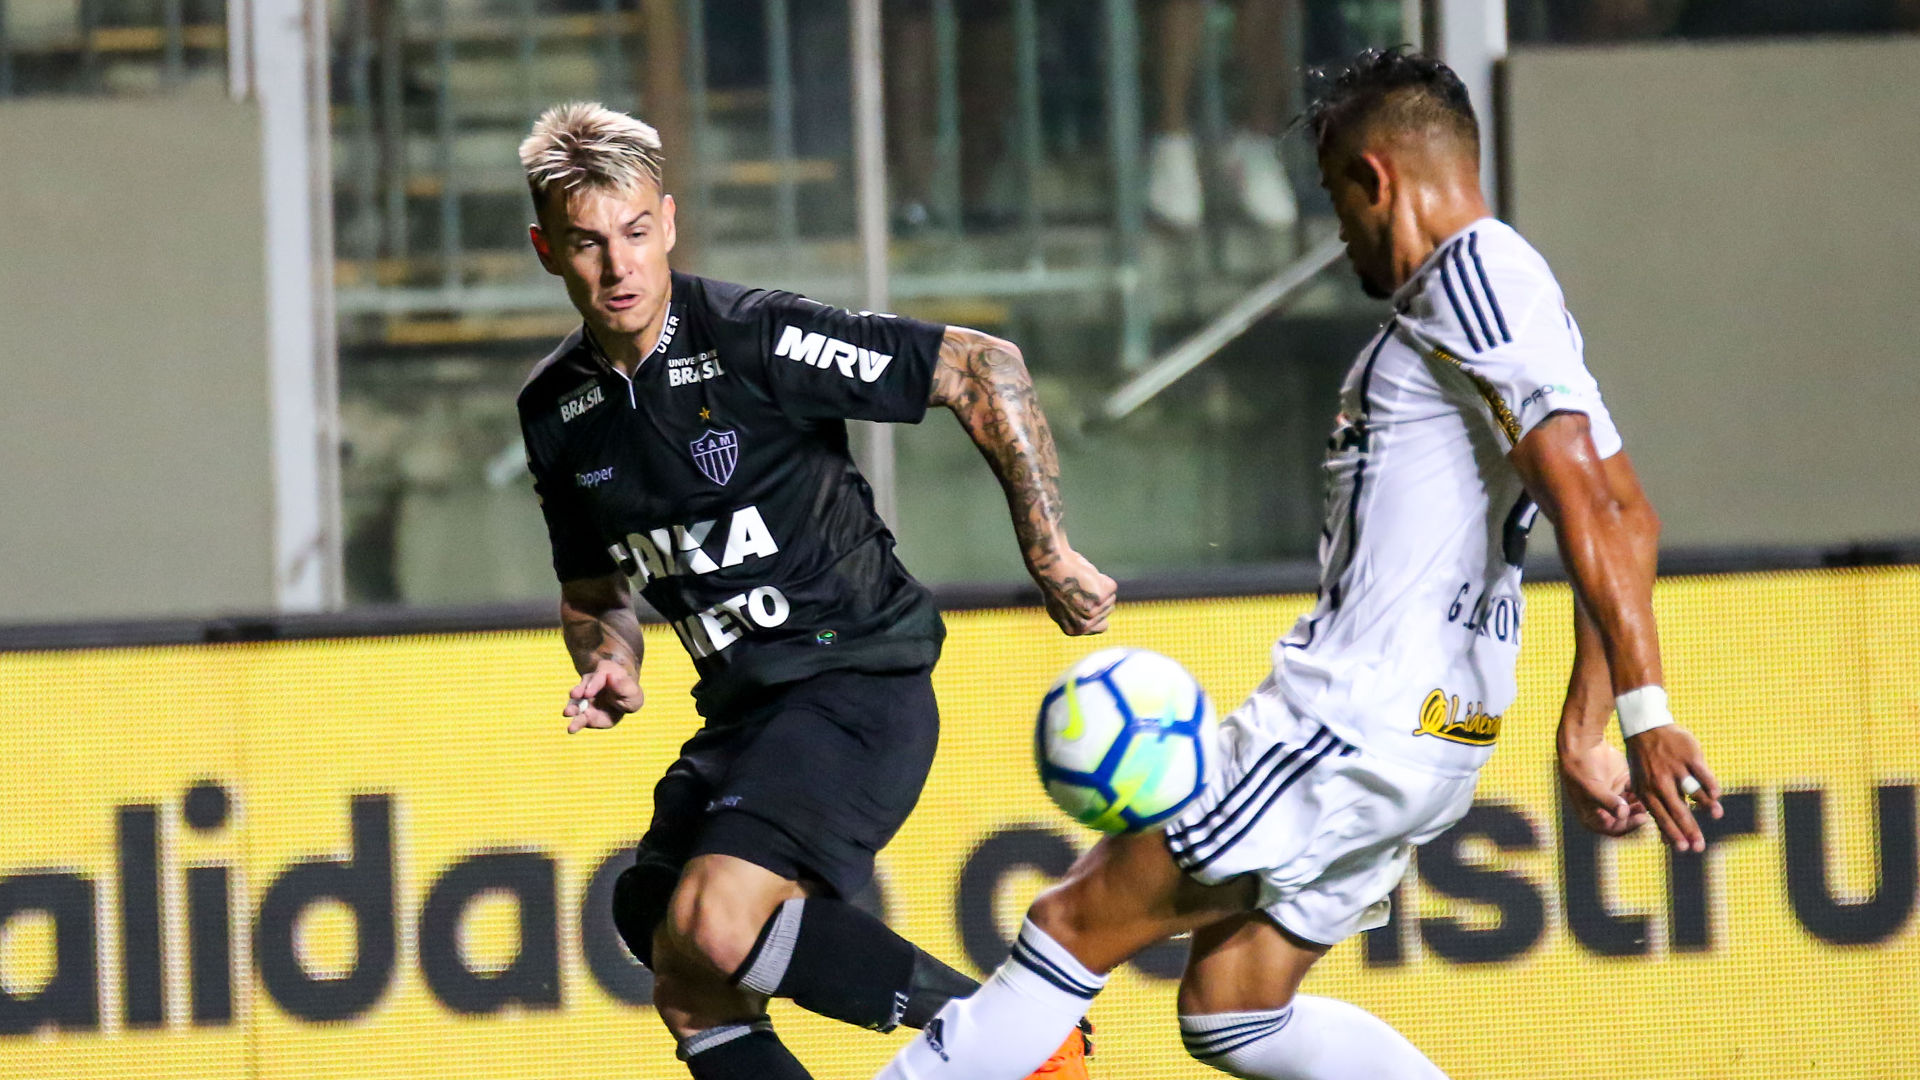 Roger Guedes Atletico-MG Figueirense 14032018 Copa do Brasil